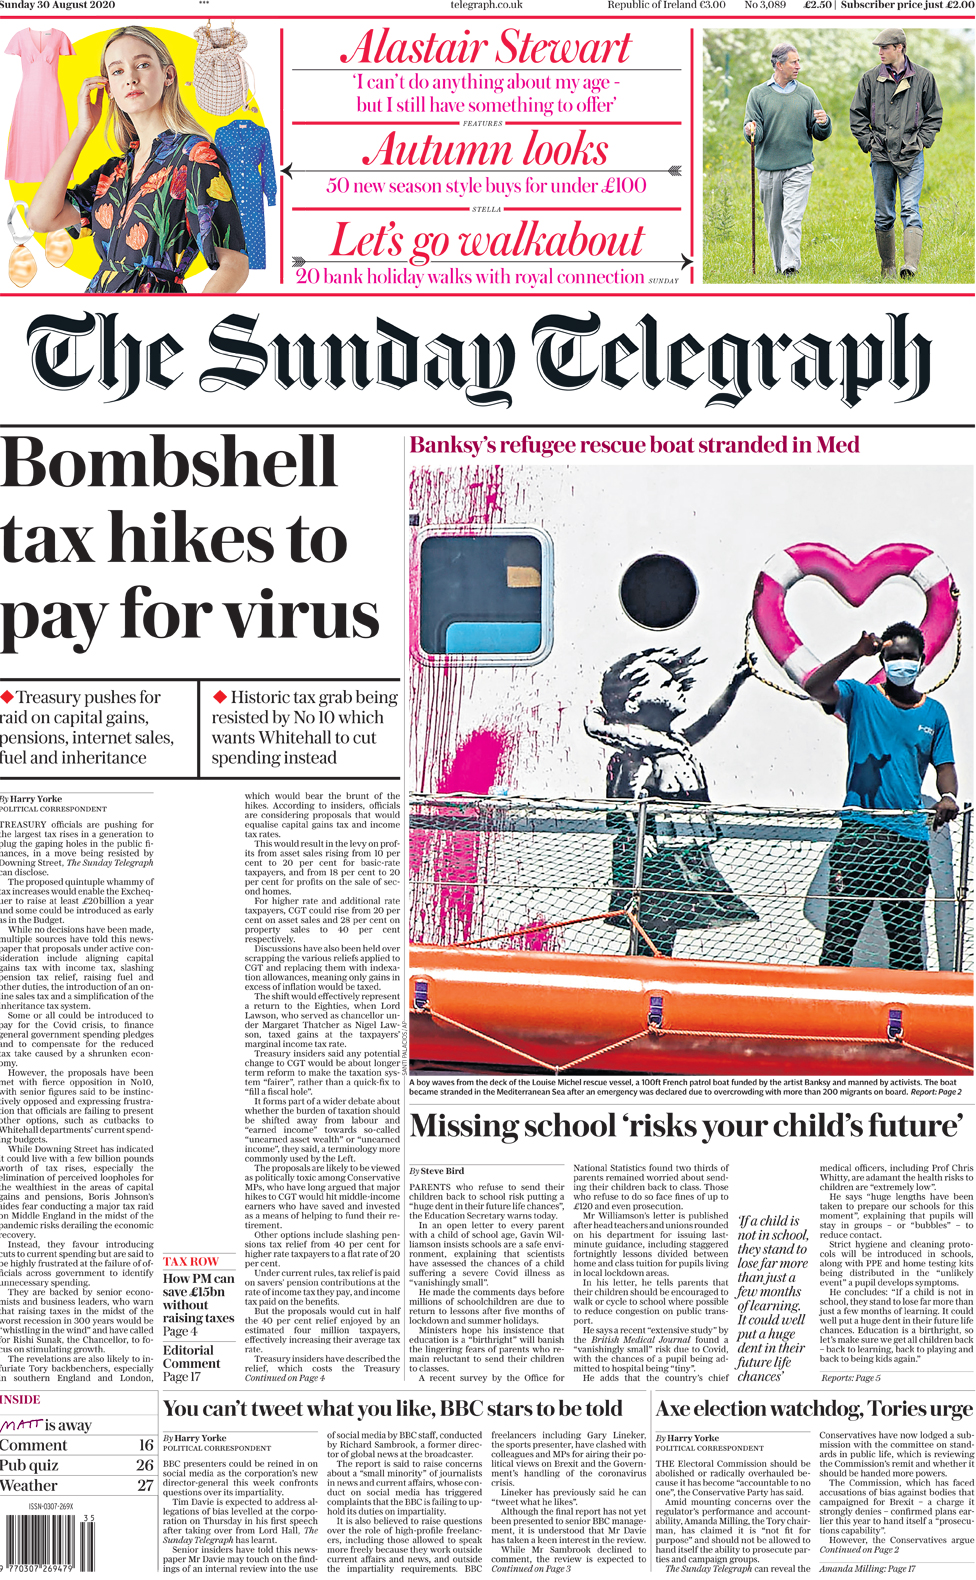 The Sunday Telegraph front page 30 August 2020